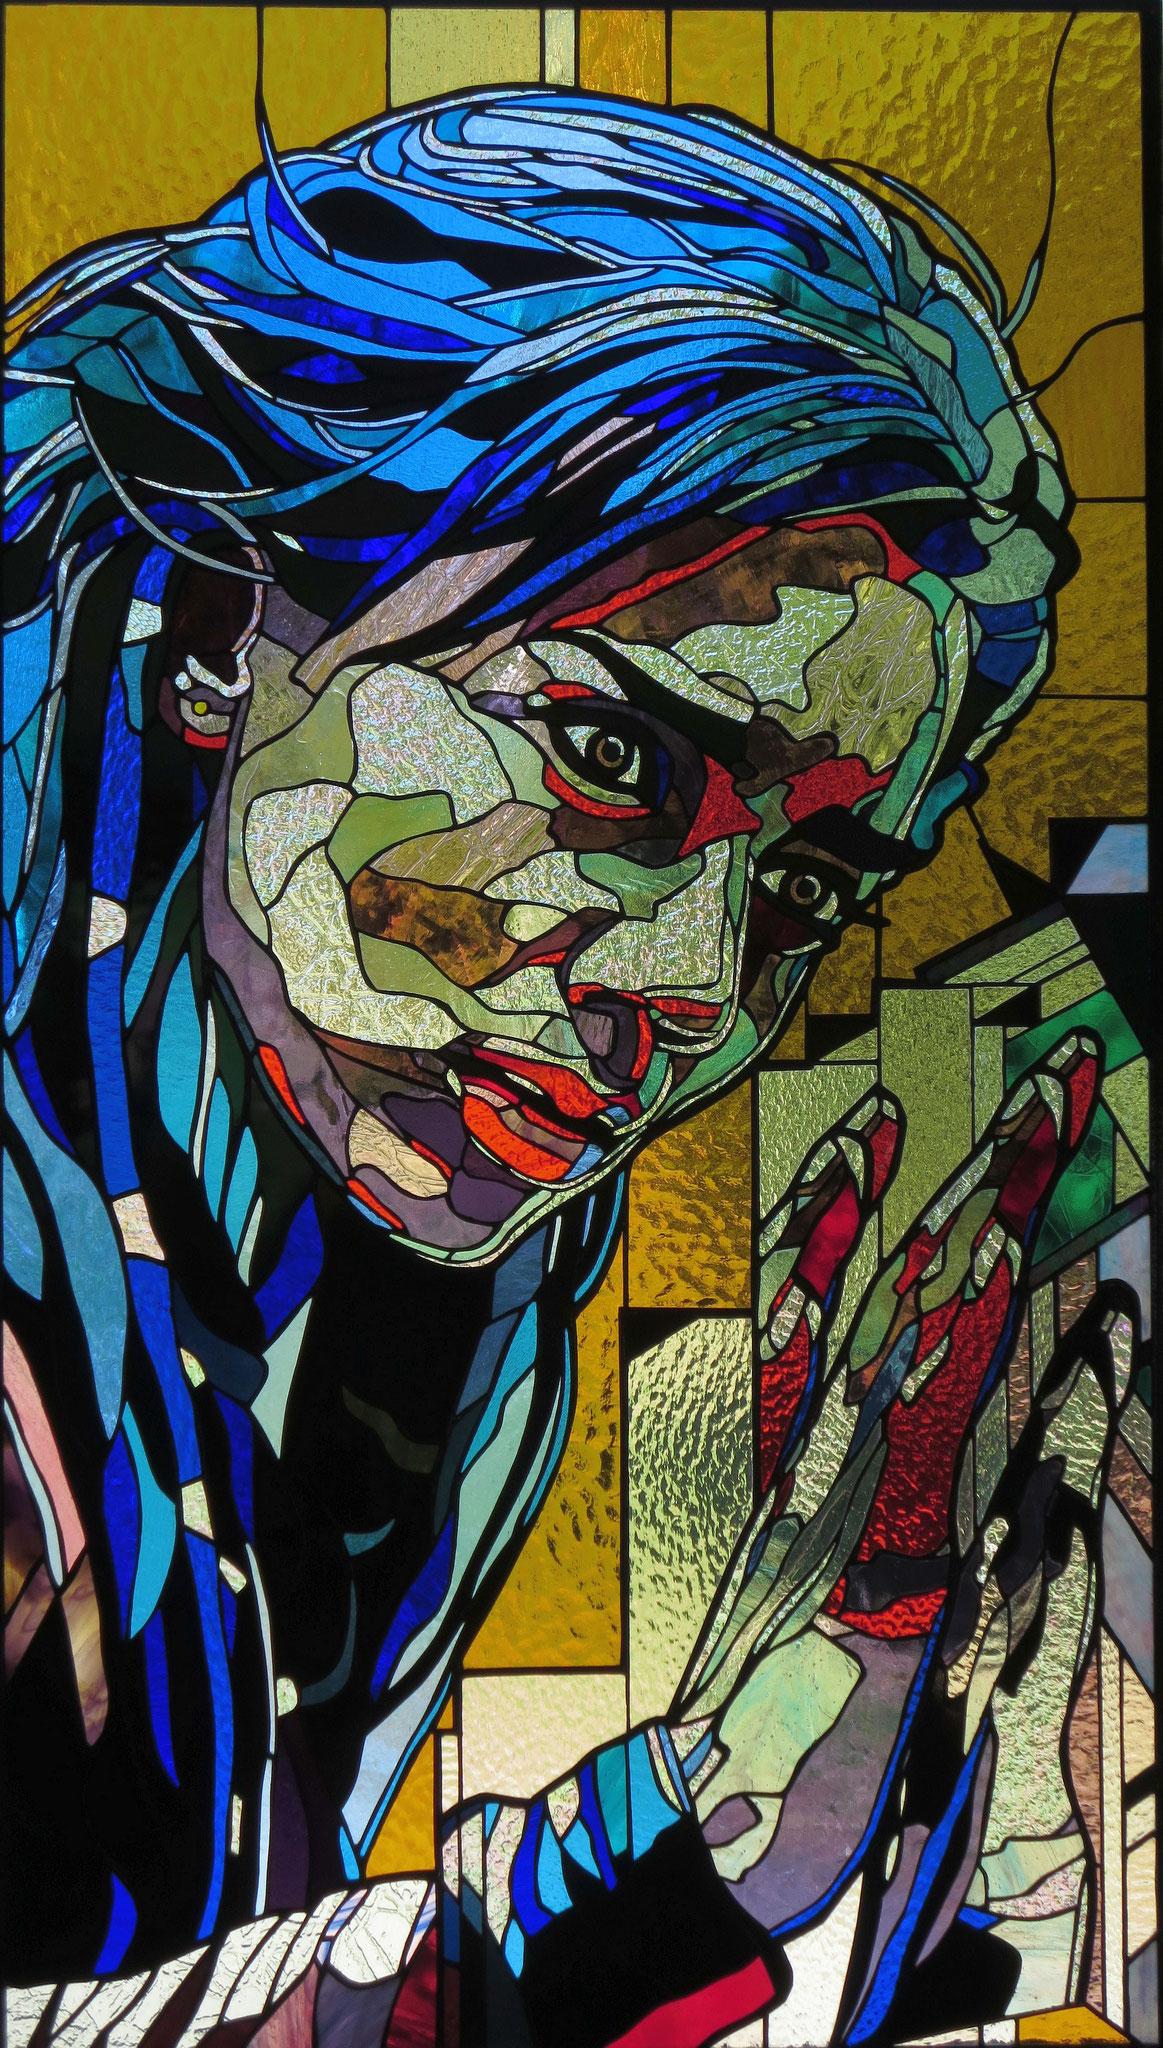 2018 New! EXPLORATION 26.5 x 47 inches stained glass